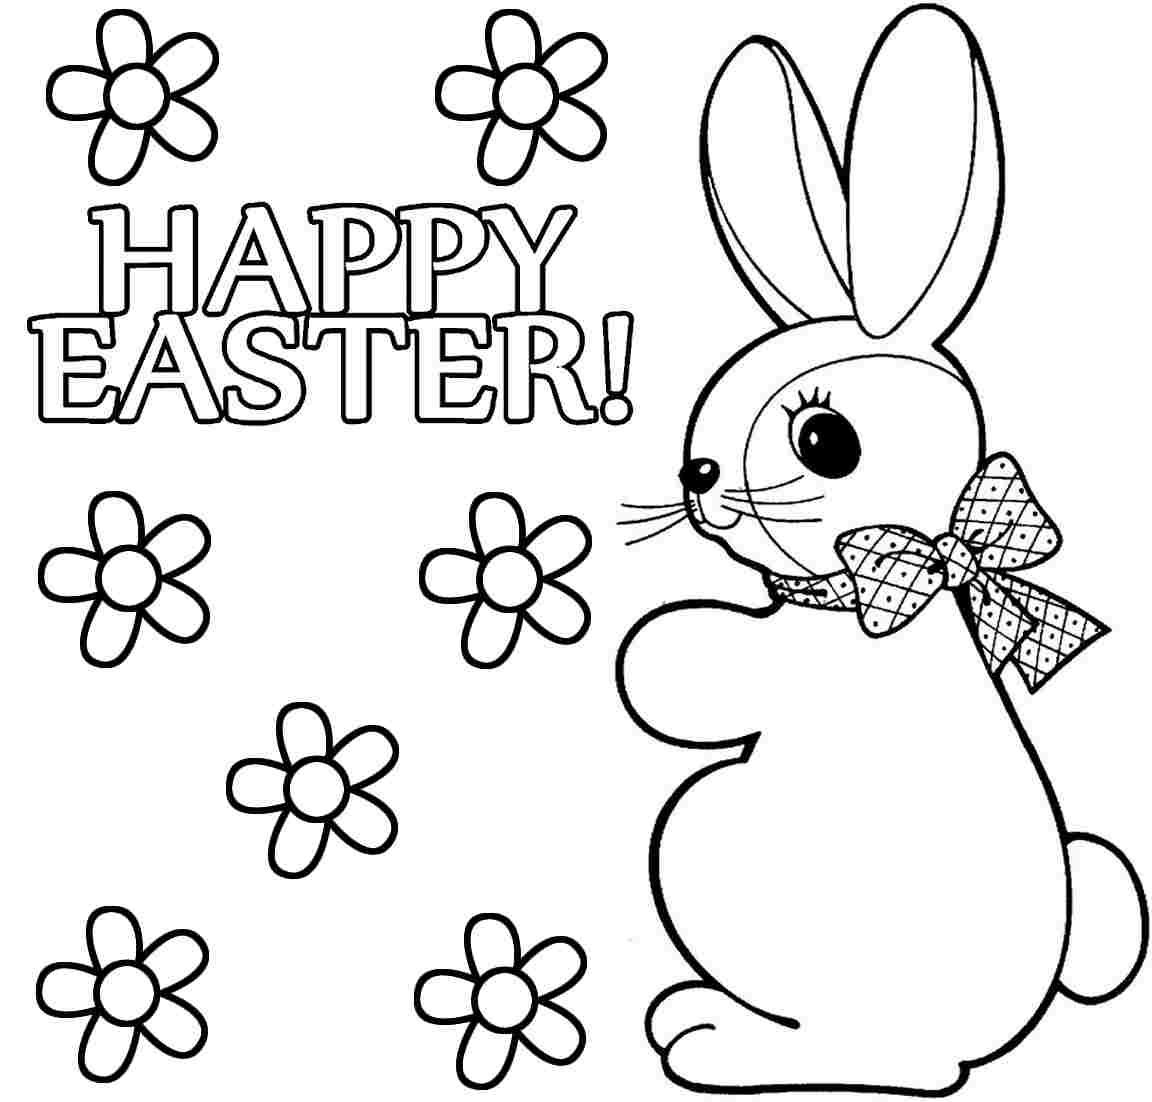 1152x1102 Easter Bunny Clip Art Google Search Coloring Pages